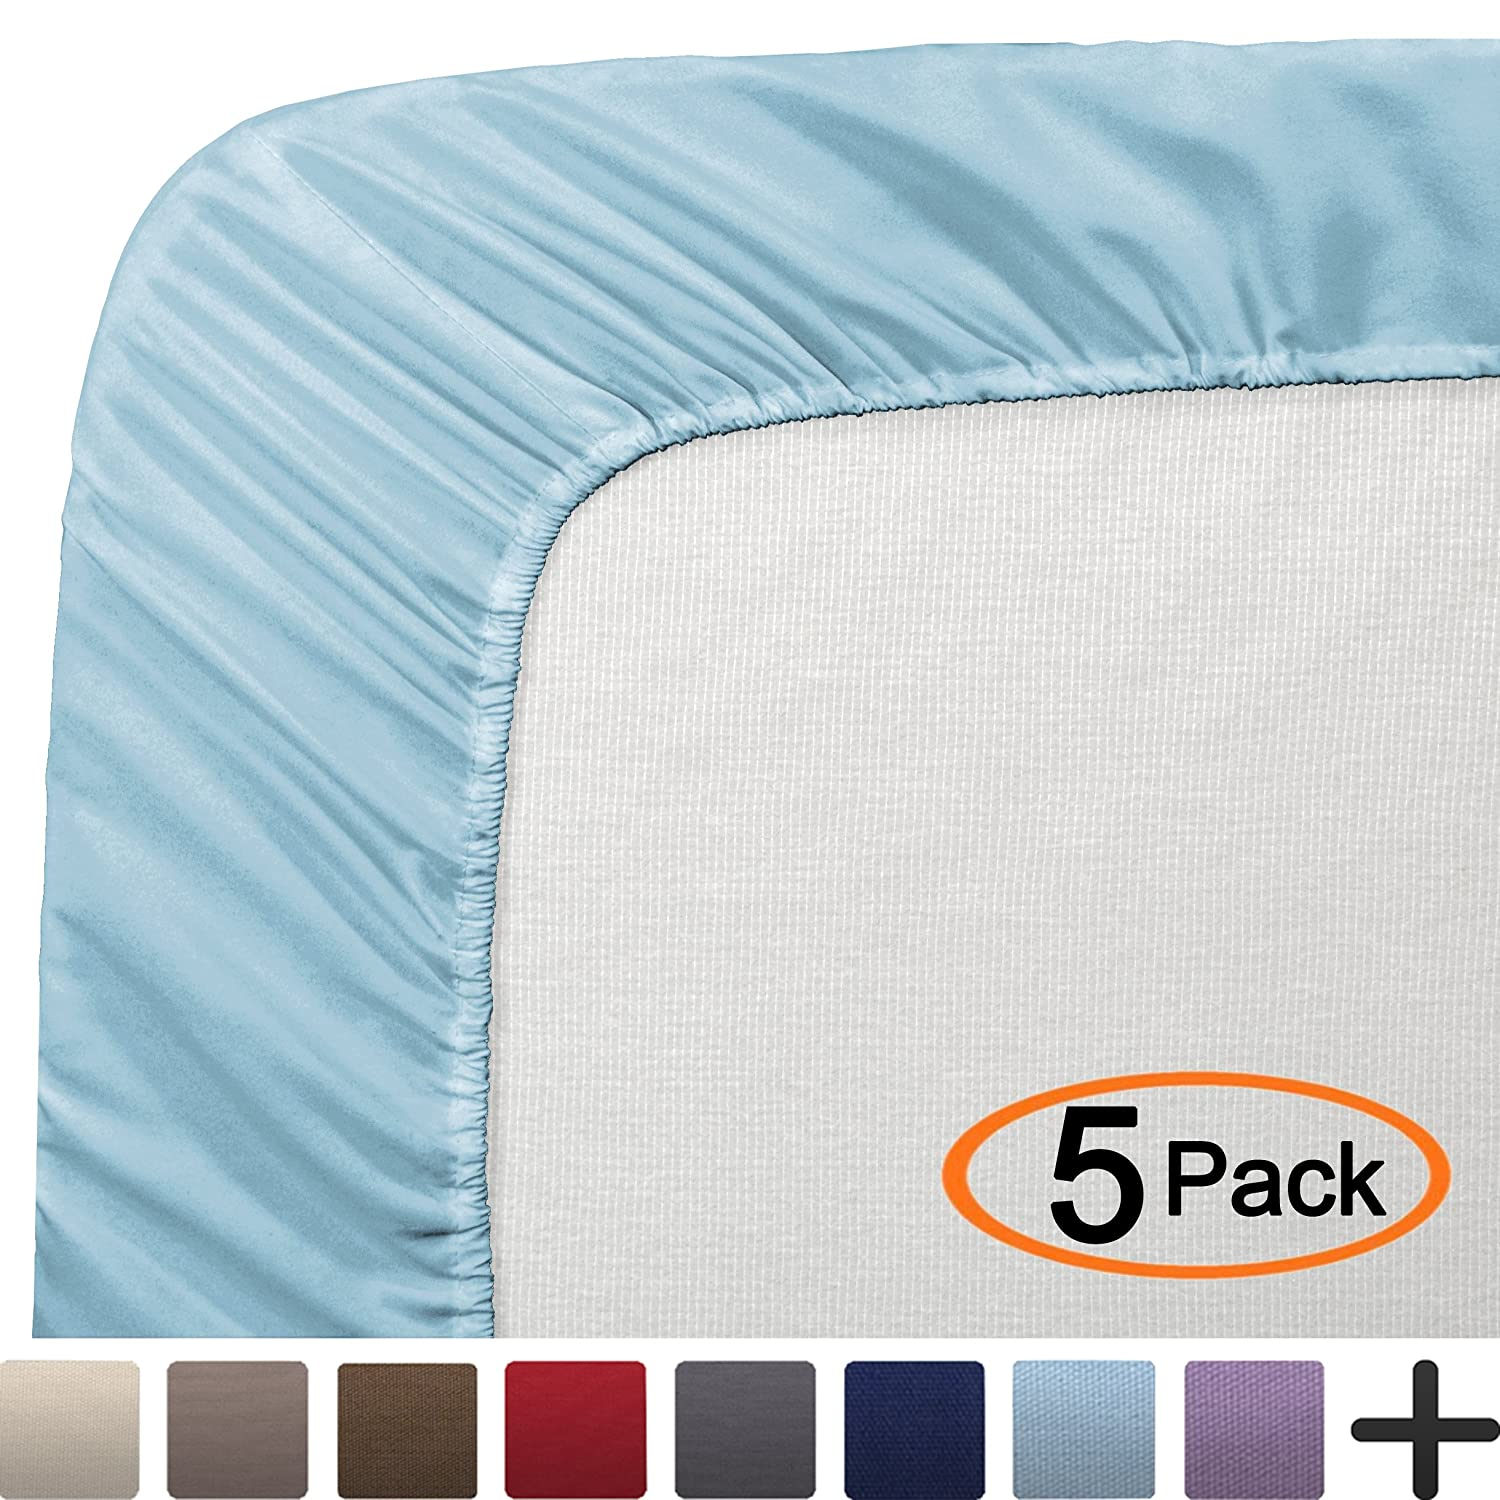 """Bare Home 5 Twin Fitted Premium Bed Sheets (5-Pack) - Ultra-Soft, Hypoallergenic, Twin, 12"""" Deep Pocket, 39"""" x 75"""" (Twin, Light Blue)"""